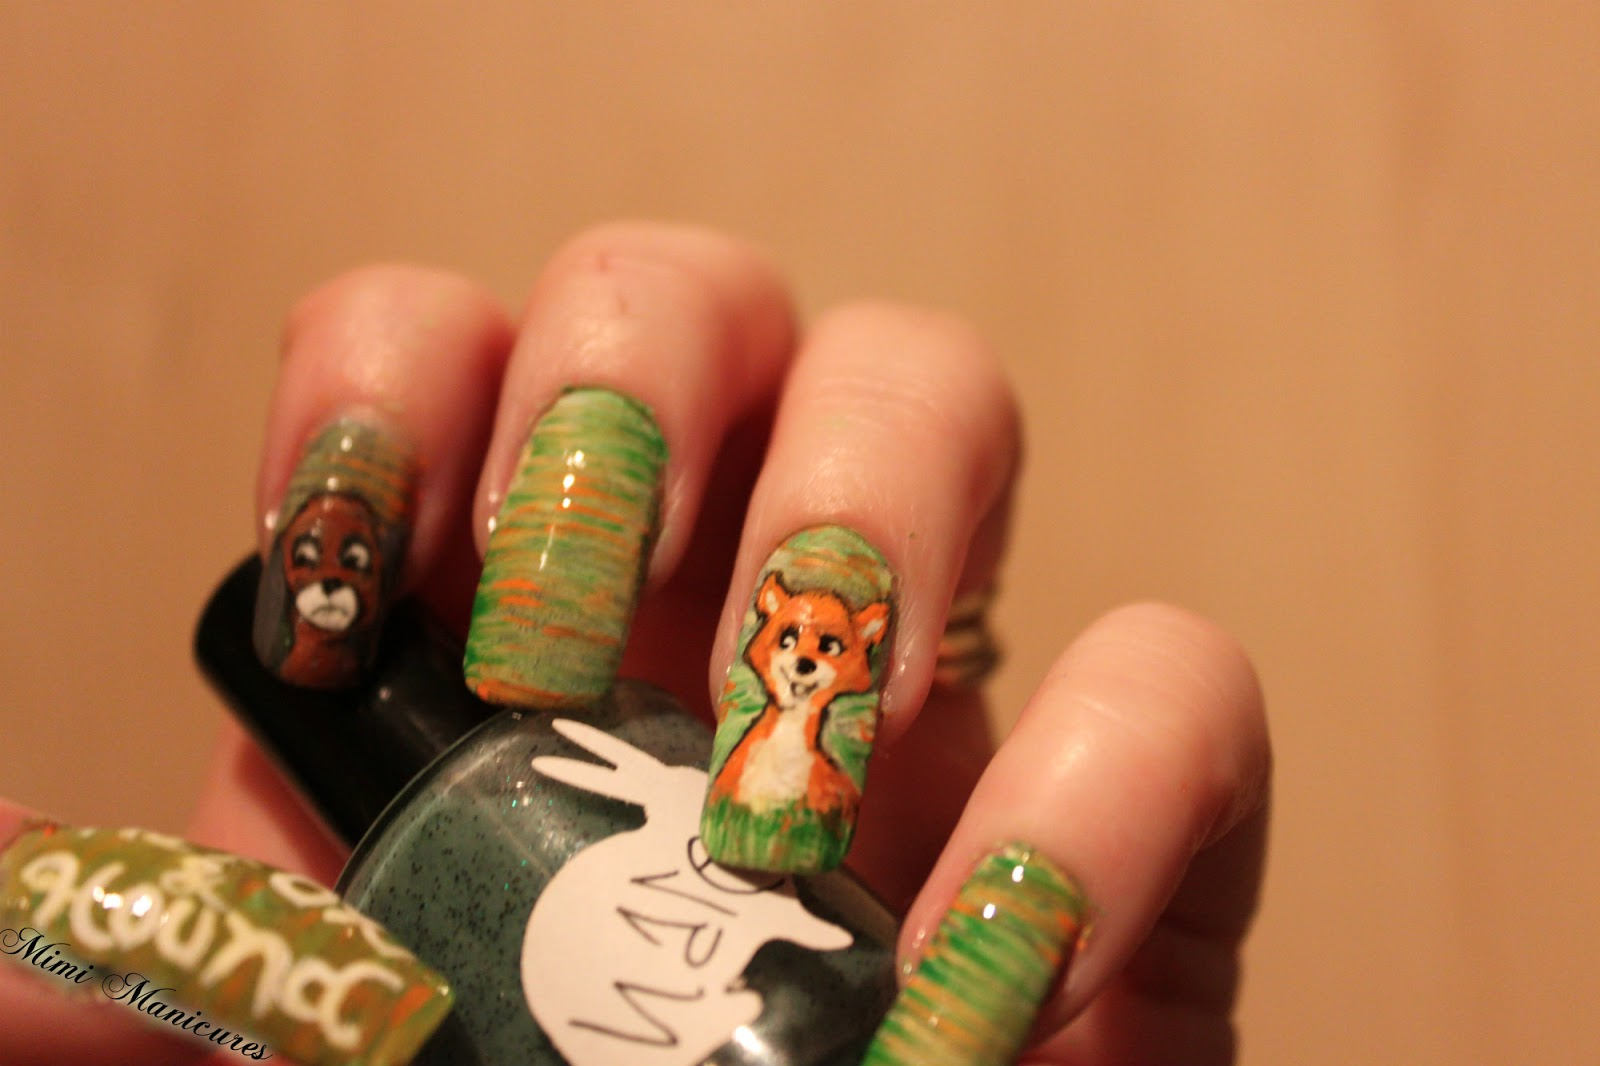 my adventures in nail polish: Disney Days Fox And The Hound